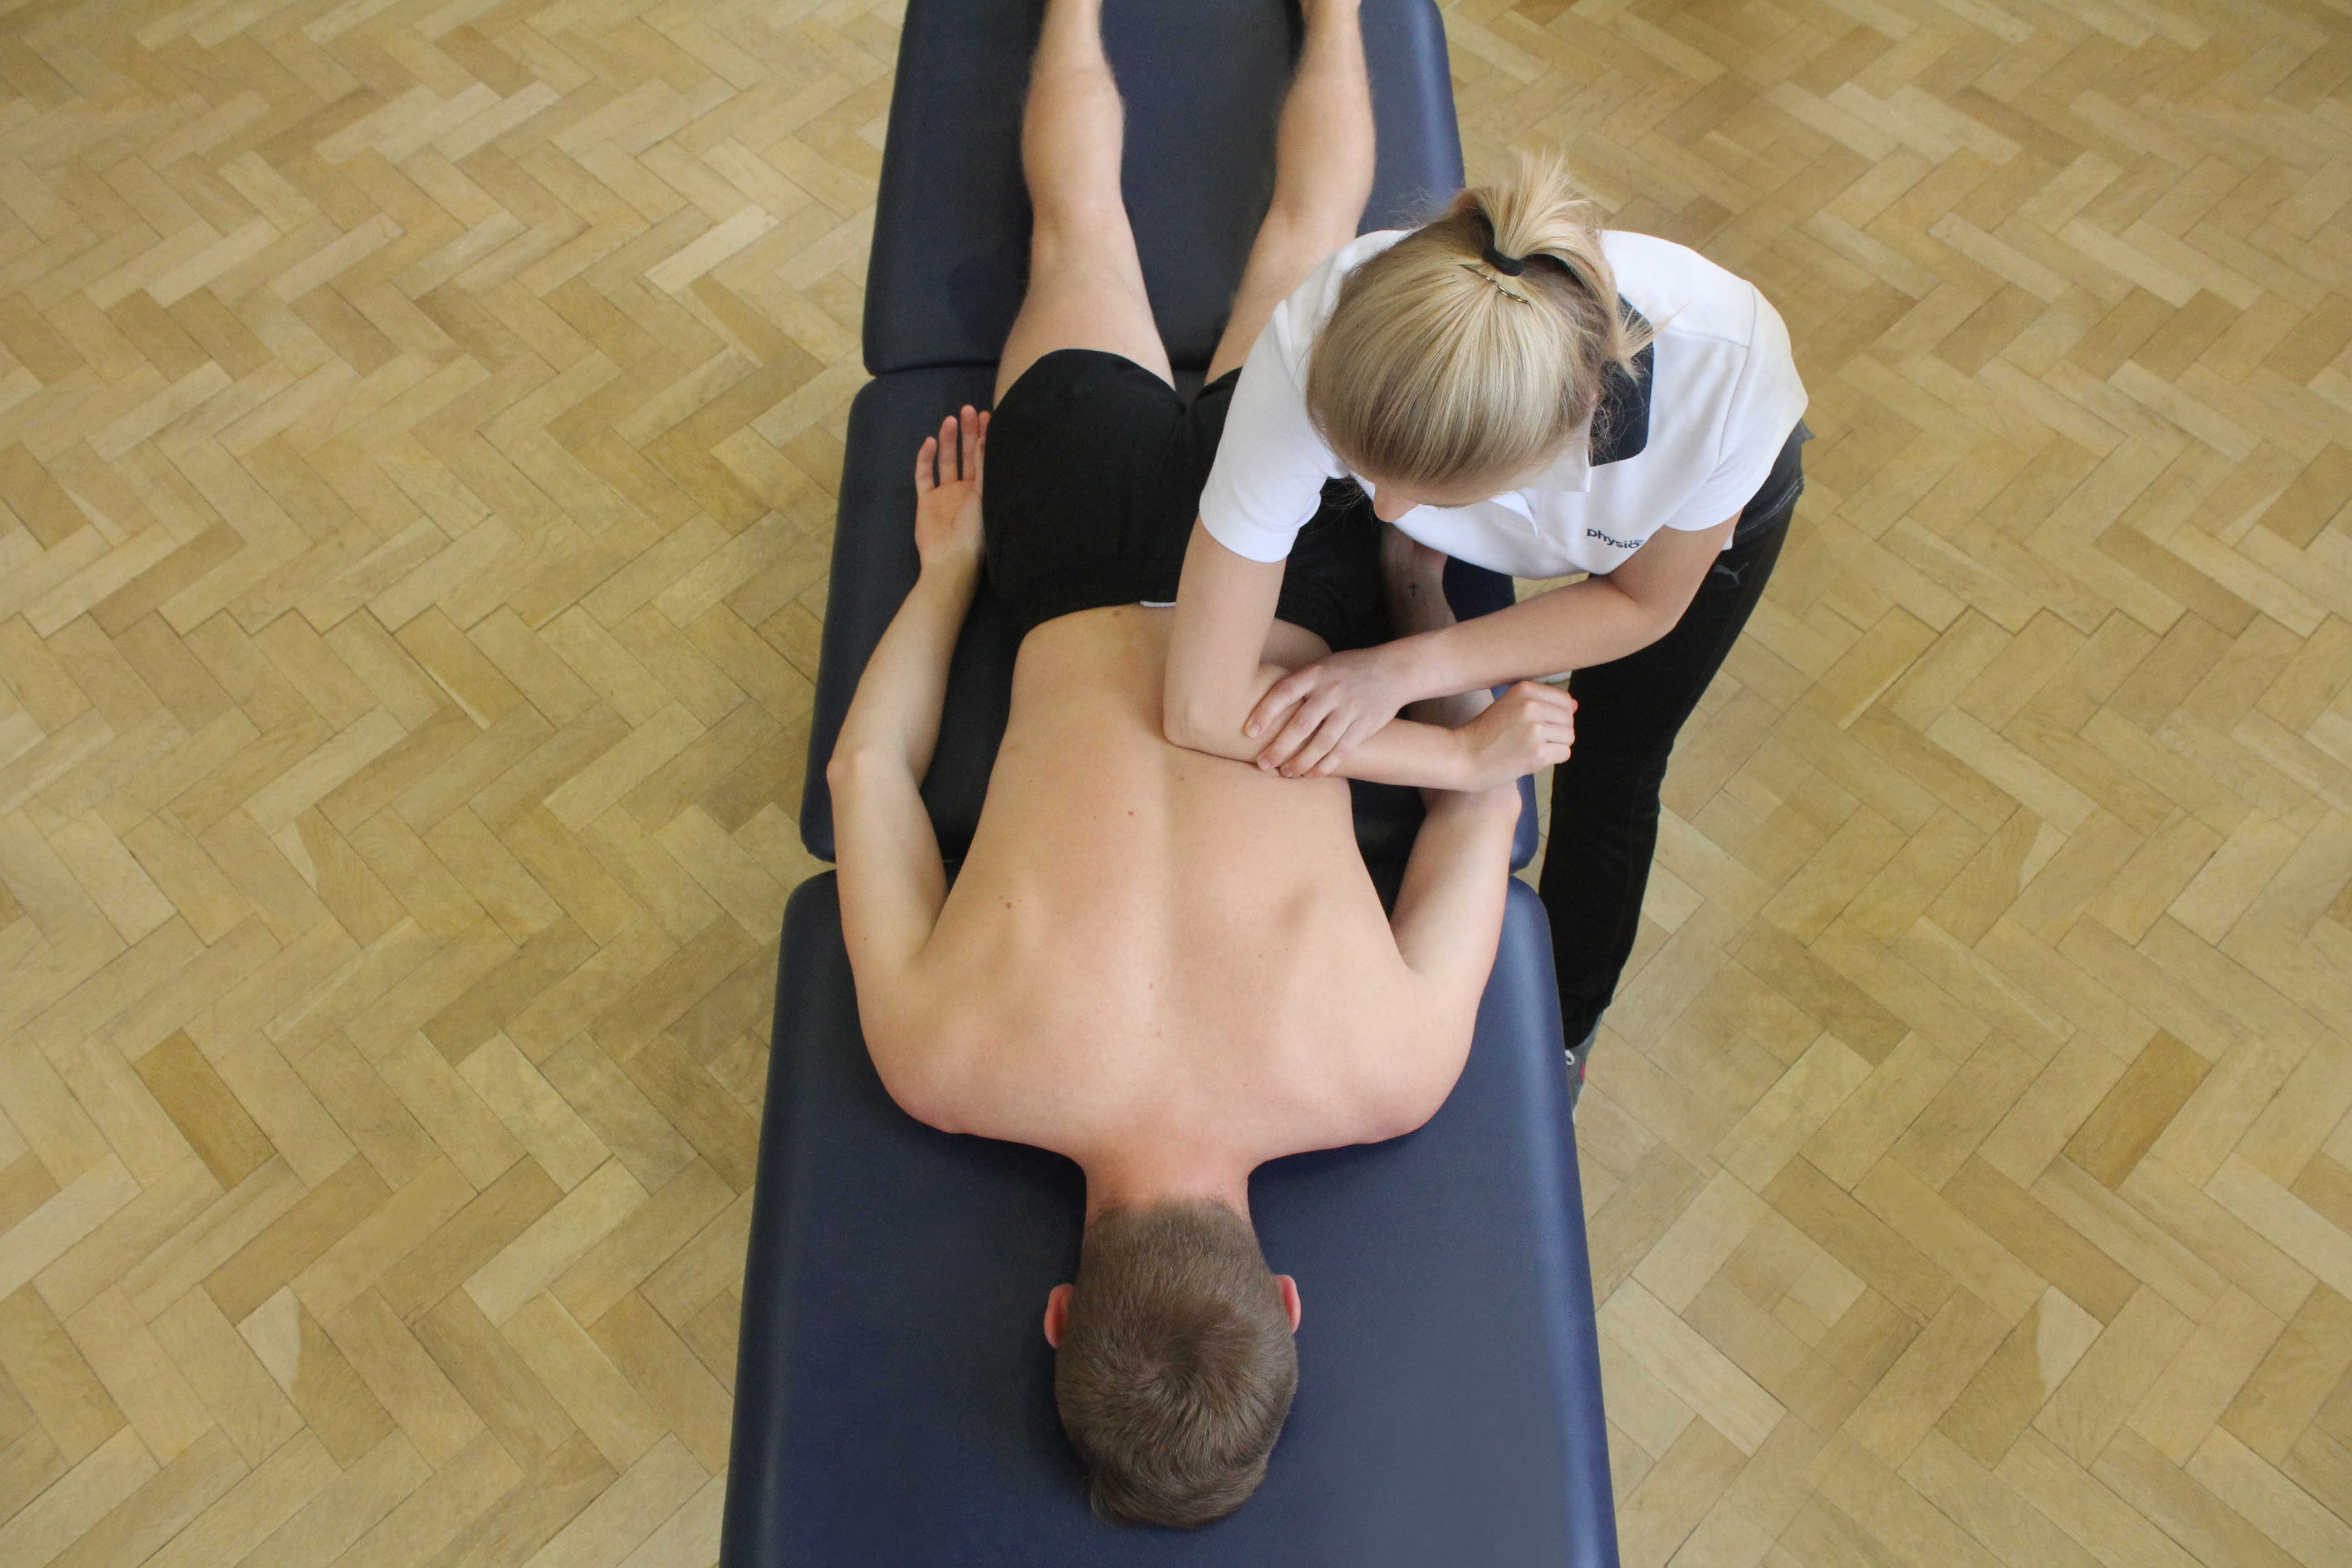 Deep tissue massage of the lower back muscles